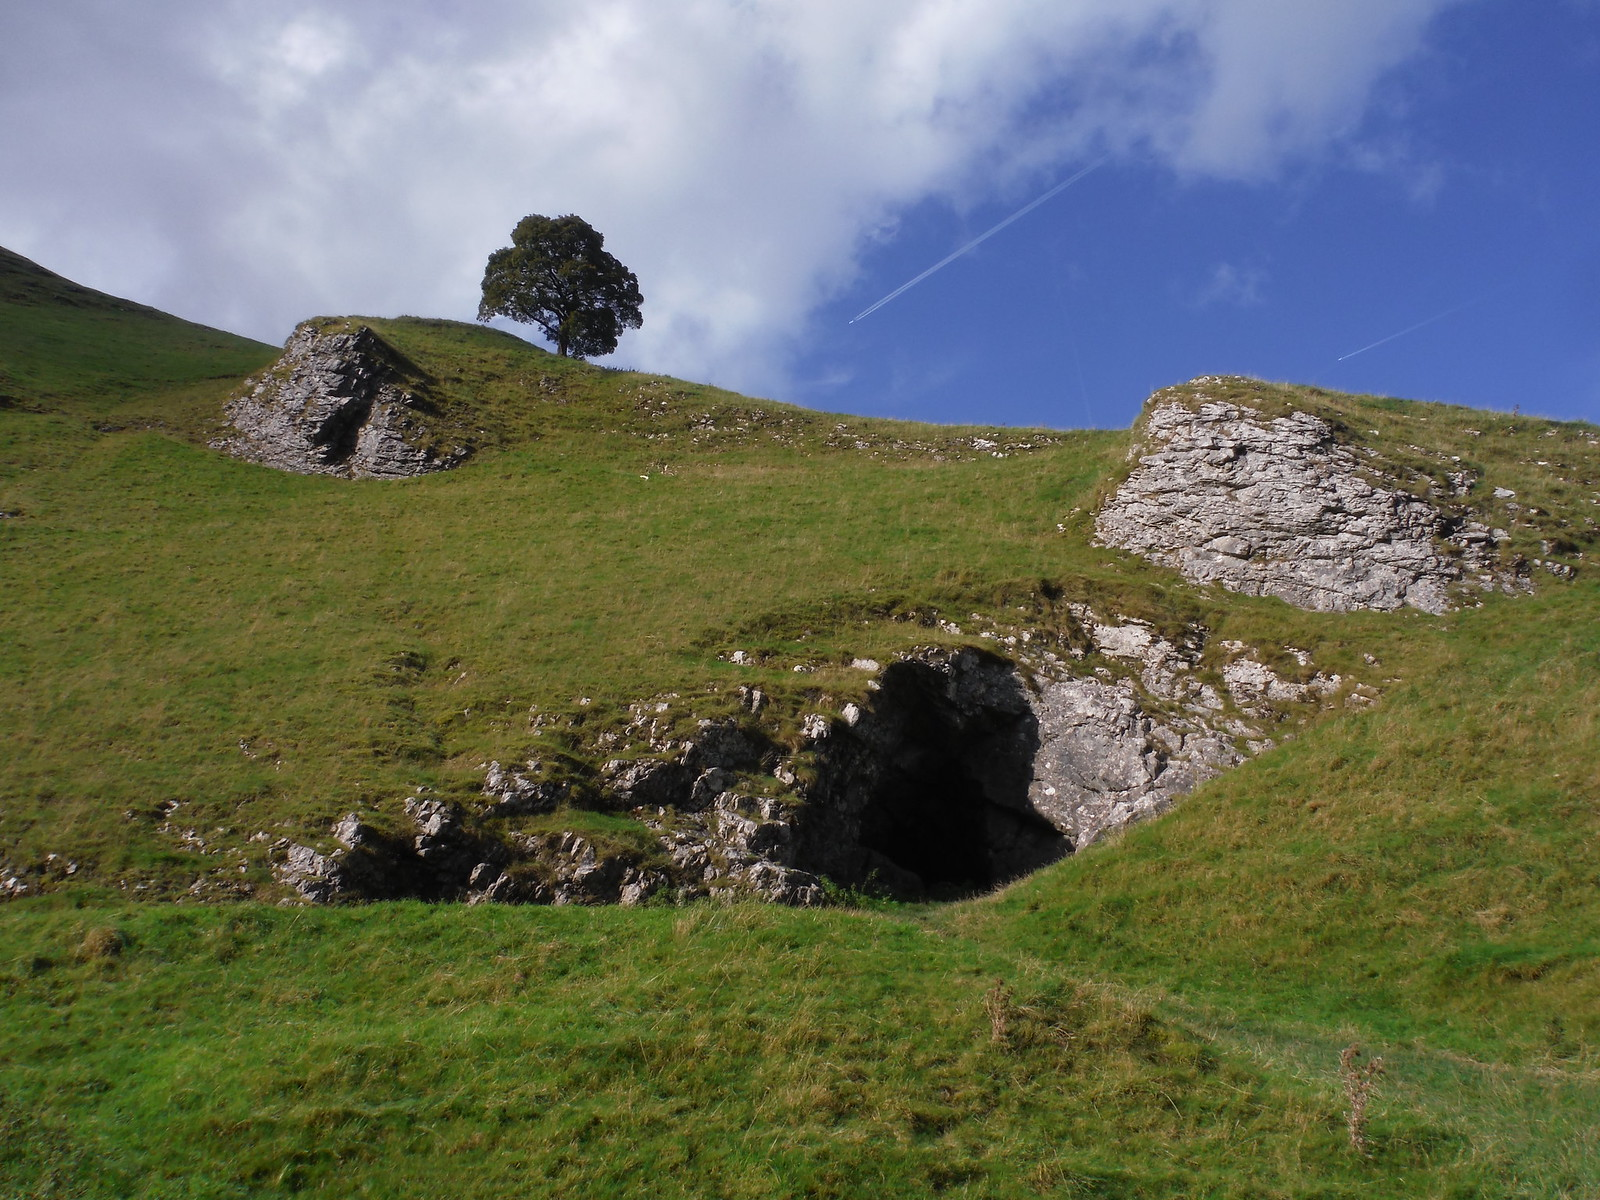 Cave Entrance, Winnats Pass SWC Walk 302 - Bamford to Edale (via Win Hill and Great Ridge) [Castleton Alternatives]